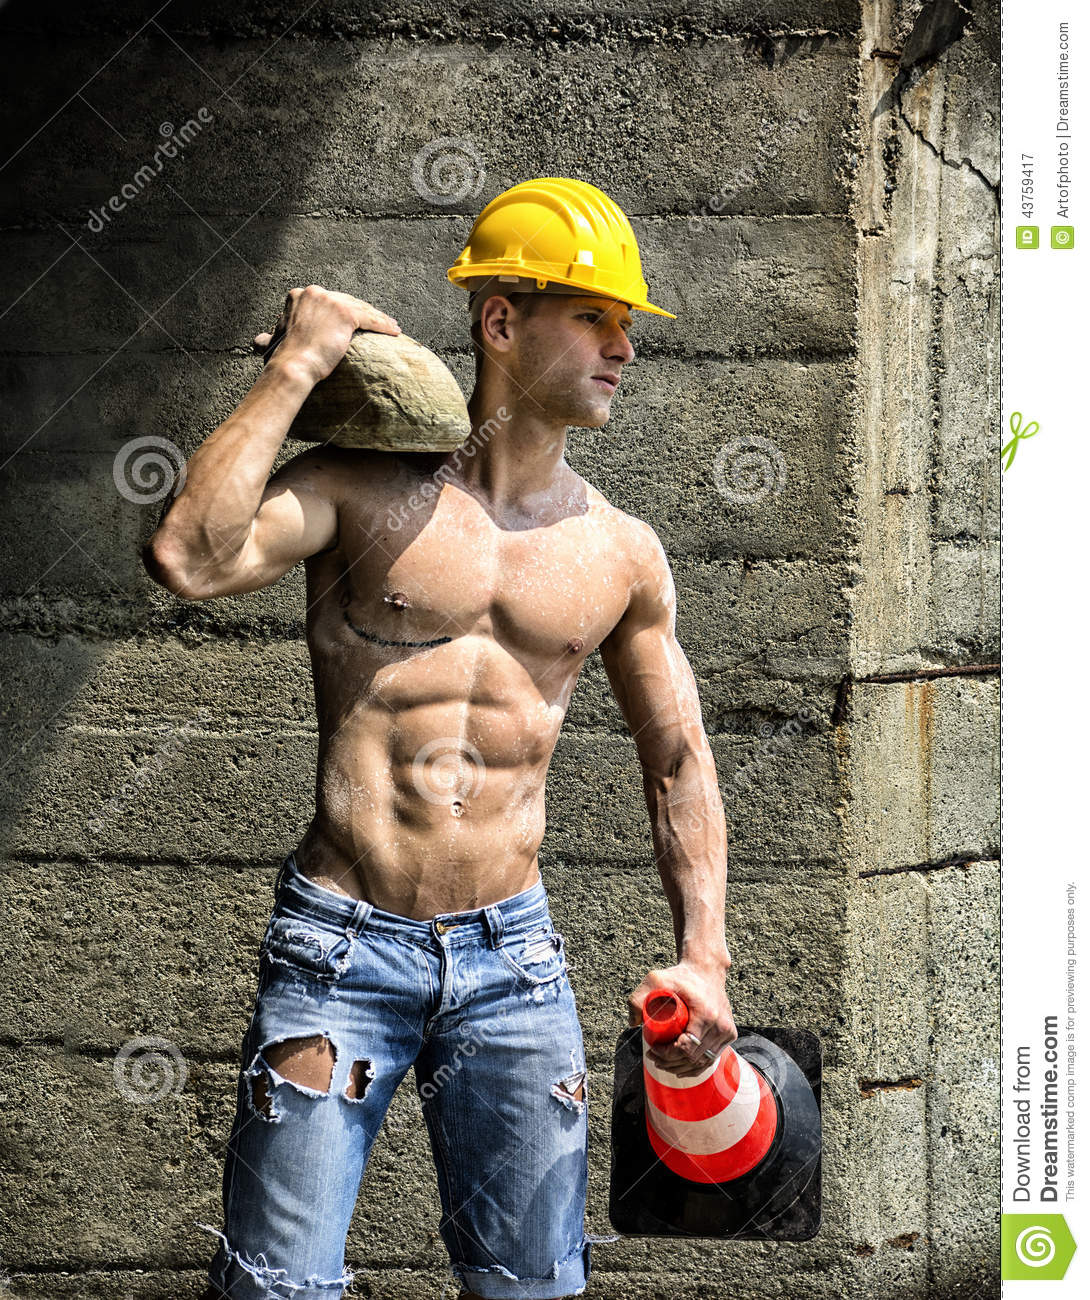 Handsome, Muscular Construction Worker Shirtless Outdoor Stock Photo ...